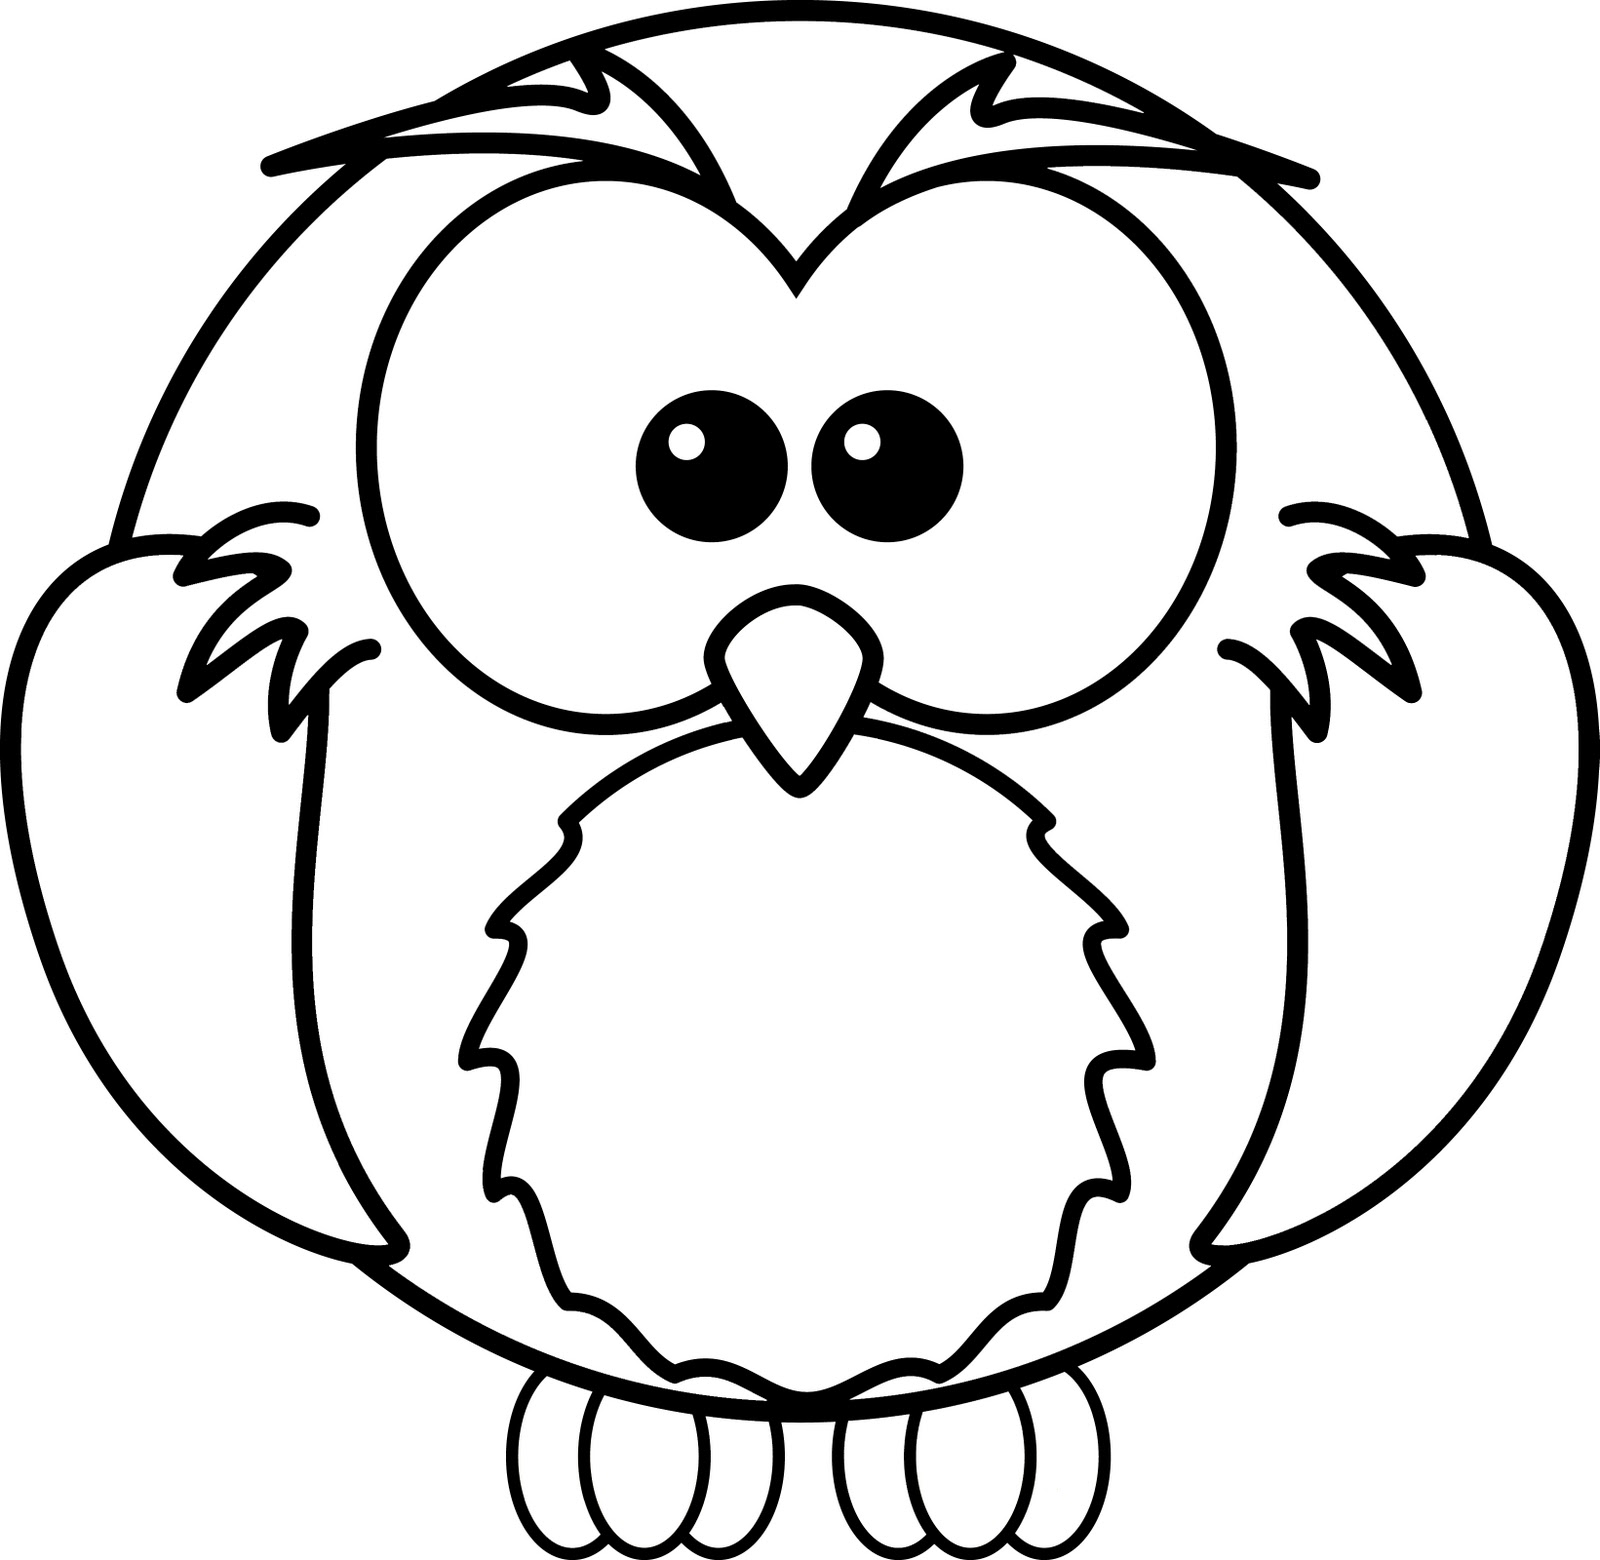 coloring pages owls owl coloring pages for adults free detailed owl coloring owls pages coloring